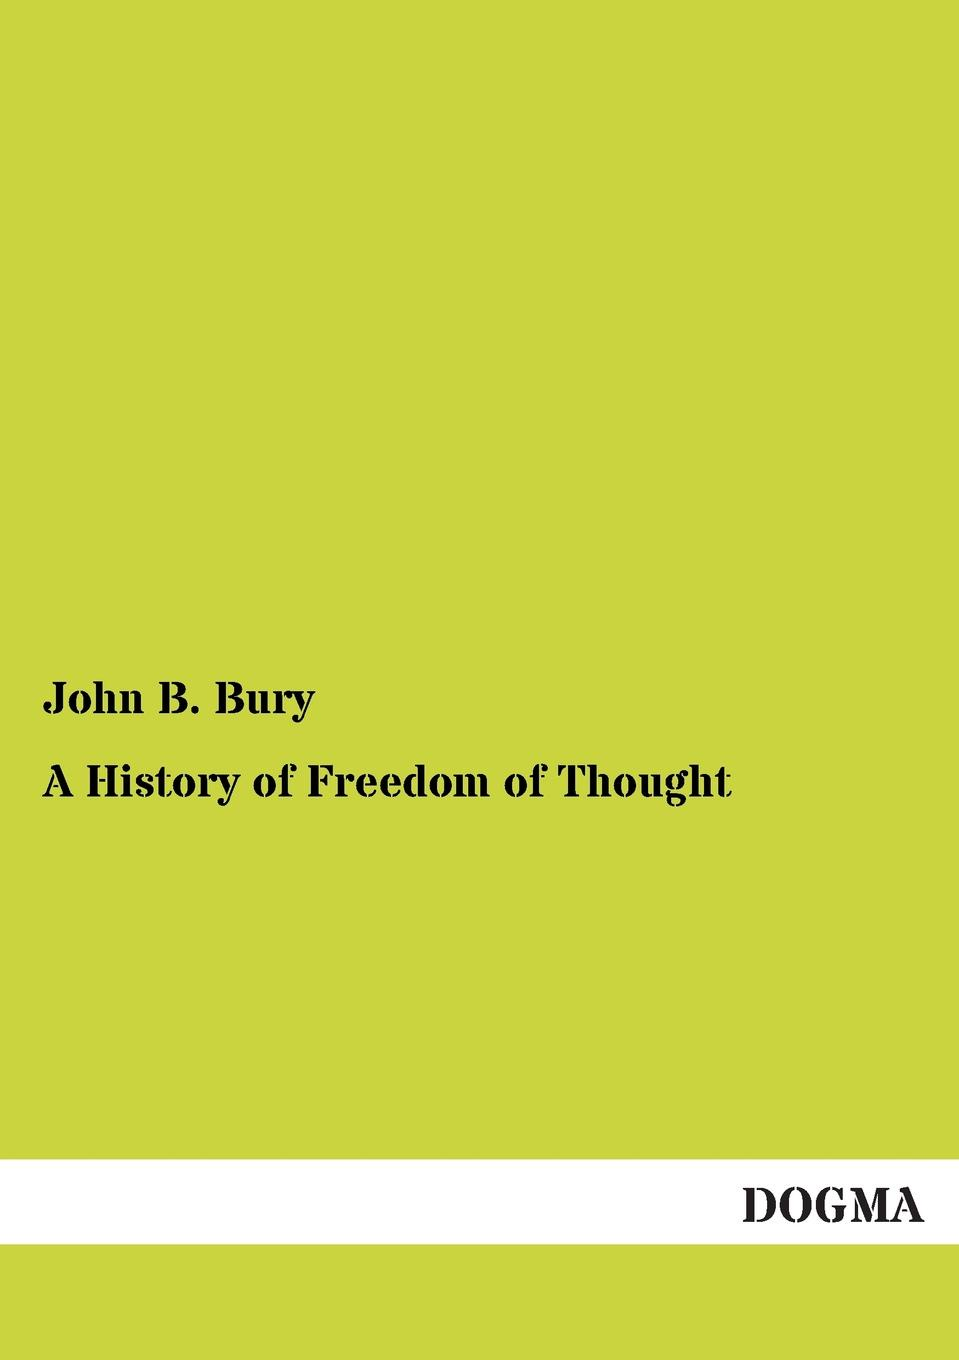 John B. Bury A History of Freedom of Thought oswyn murray early greece